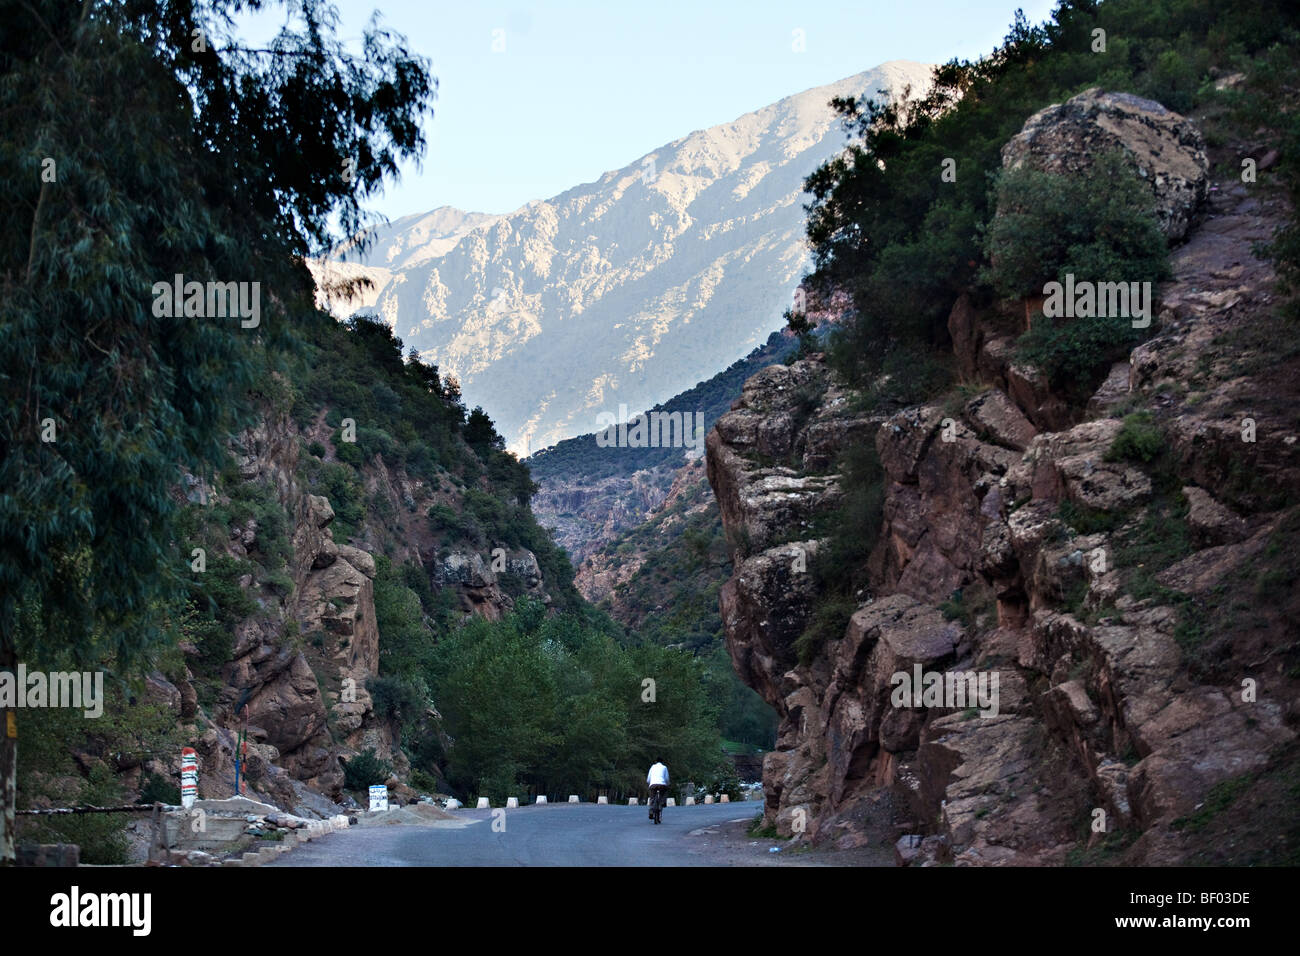 A road in Ourika Valley, High Atlas mountains, Morocco - Stock Image